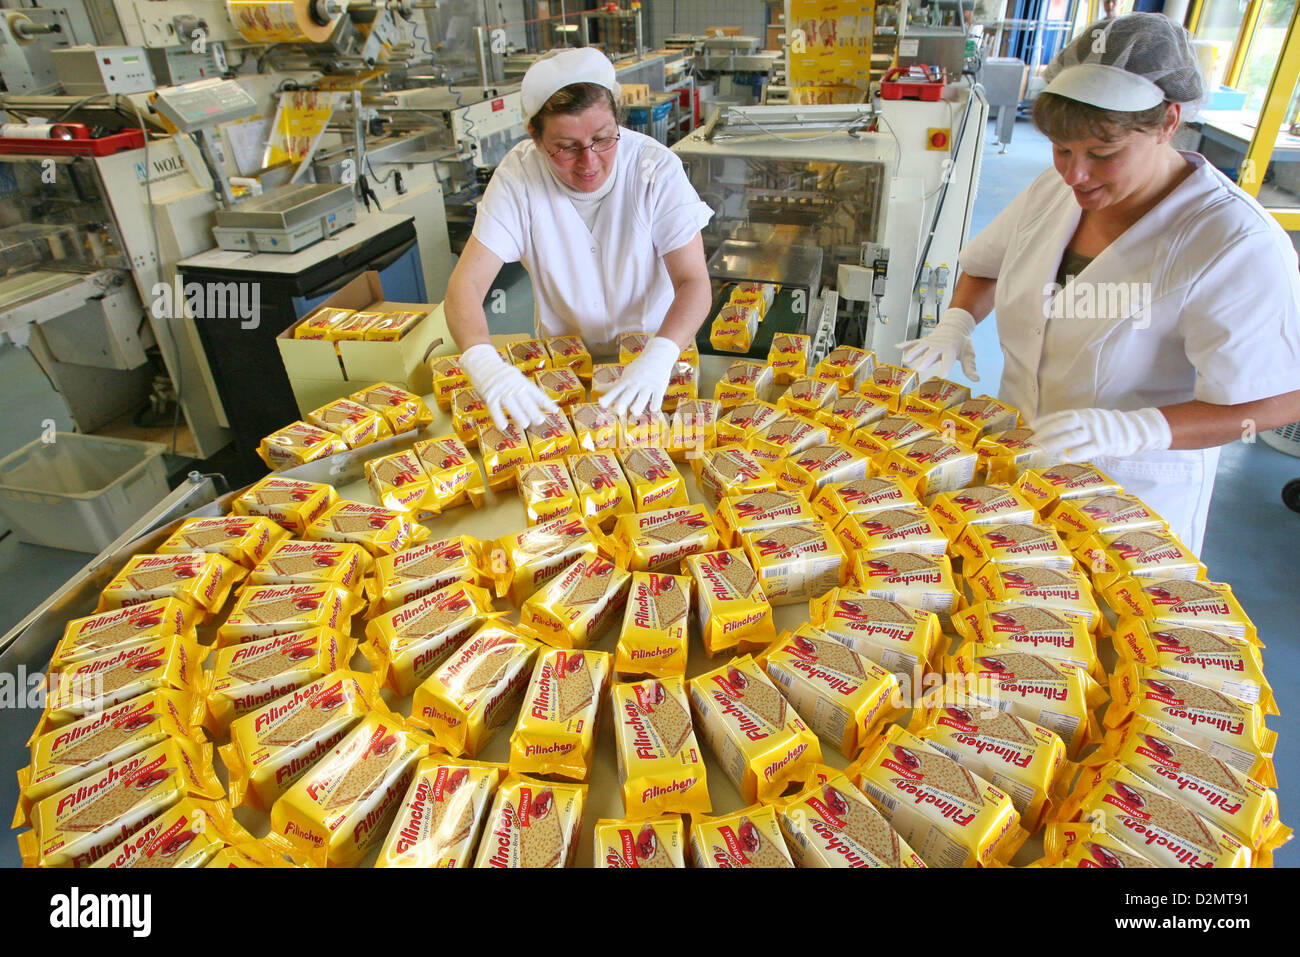 Employees Uta Chojnacki (l) and Nancy Holzhäuser prepare Filinchen packages for dispatch at Gutena GmbH in - Stock Image